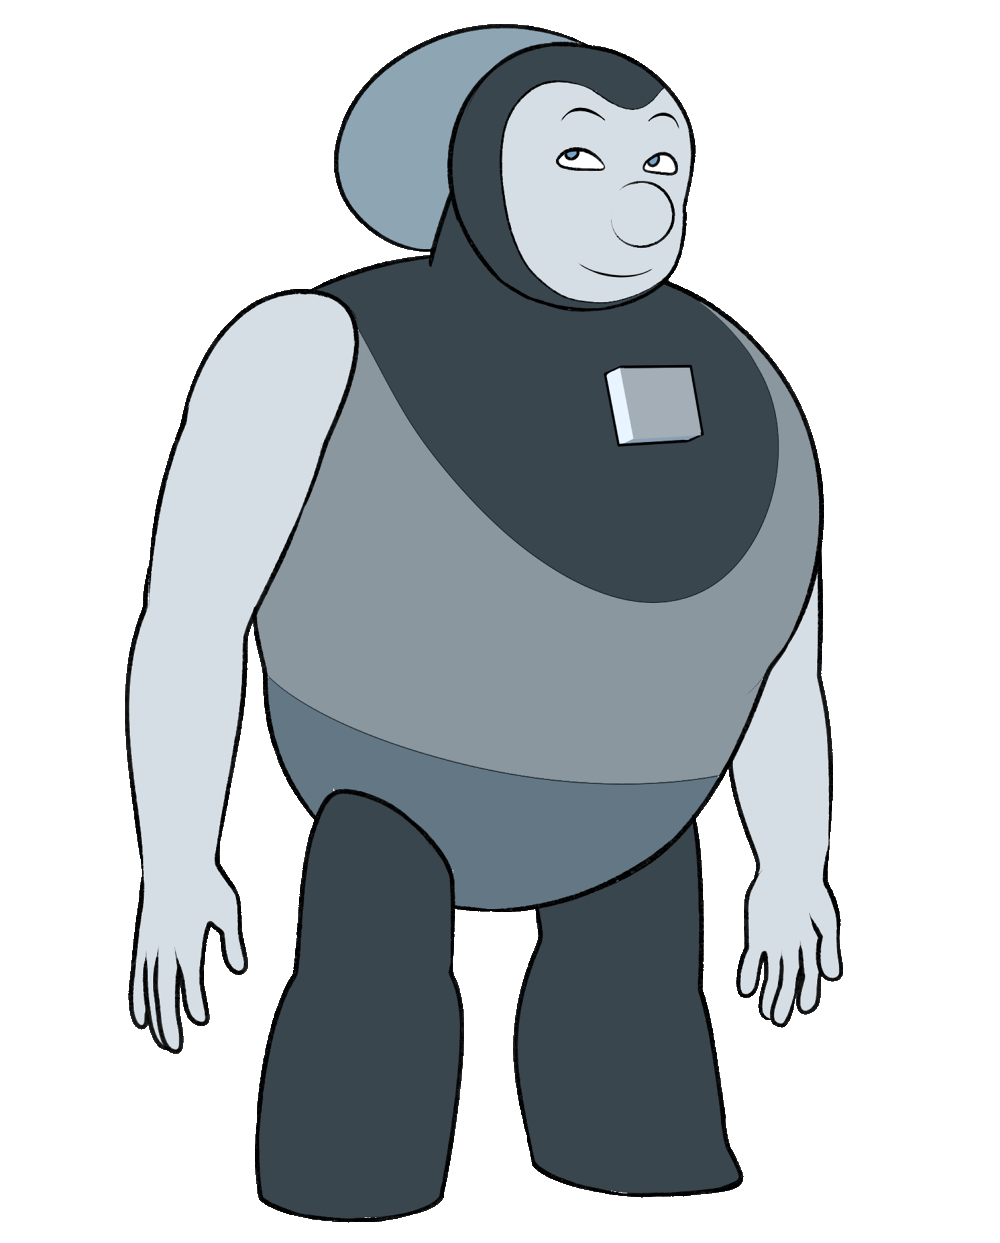 picture royalty free stock sumo drawing gorilla #115999181